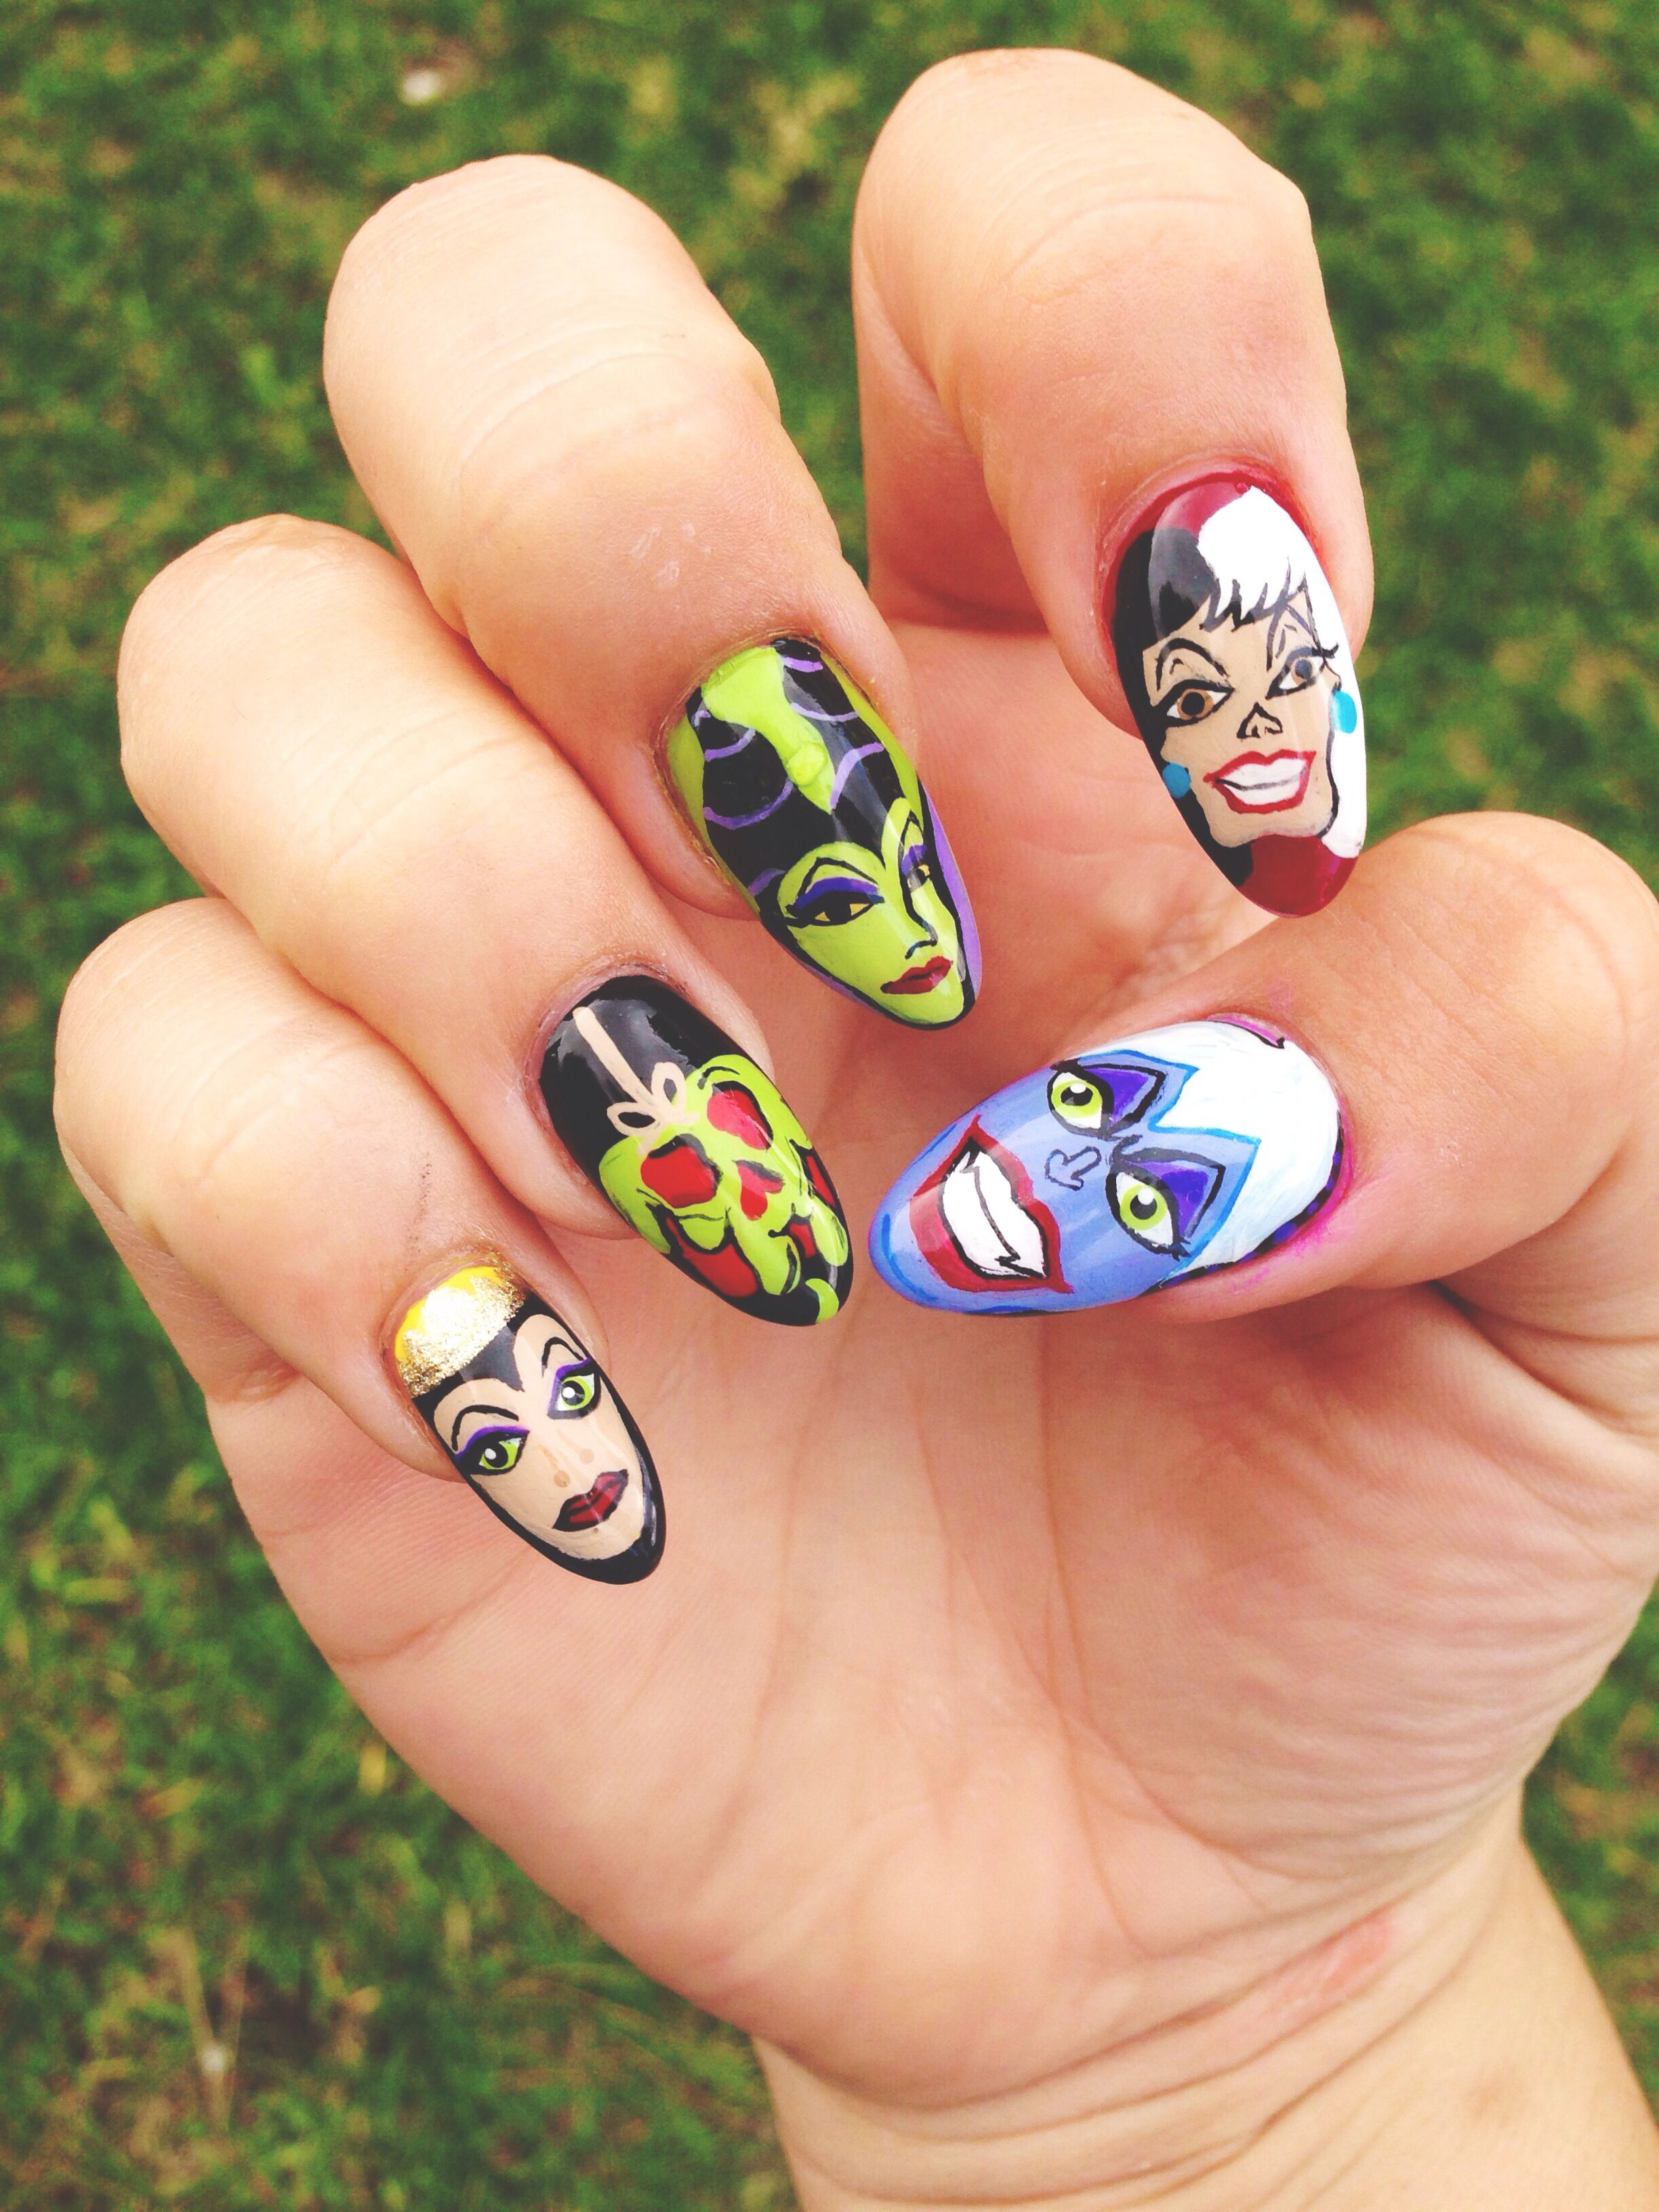 Disney nails painted with acrylic paint and a gel top coat took 4 disney nails painted with acrylic paint and a gel top coat took 4 hours prinsesfo Image collections